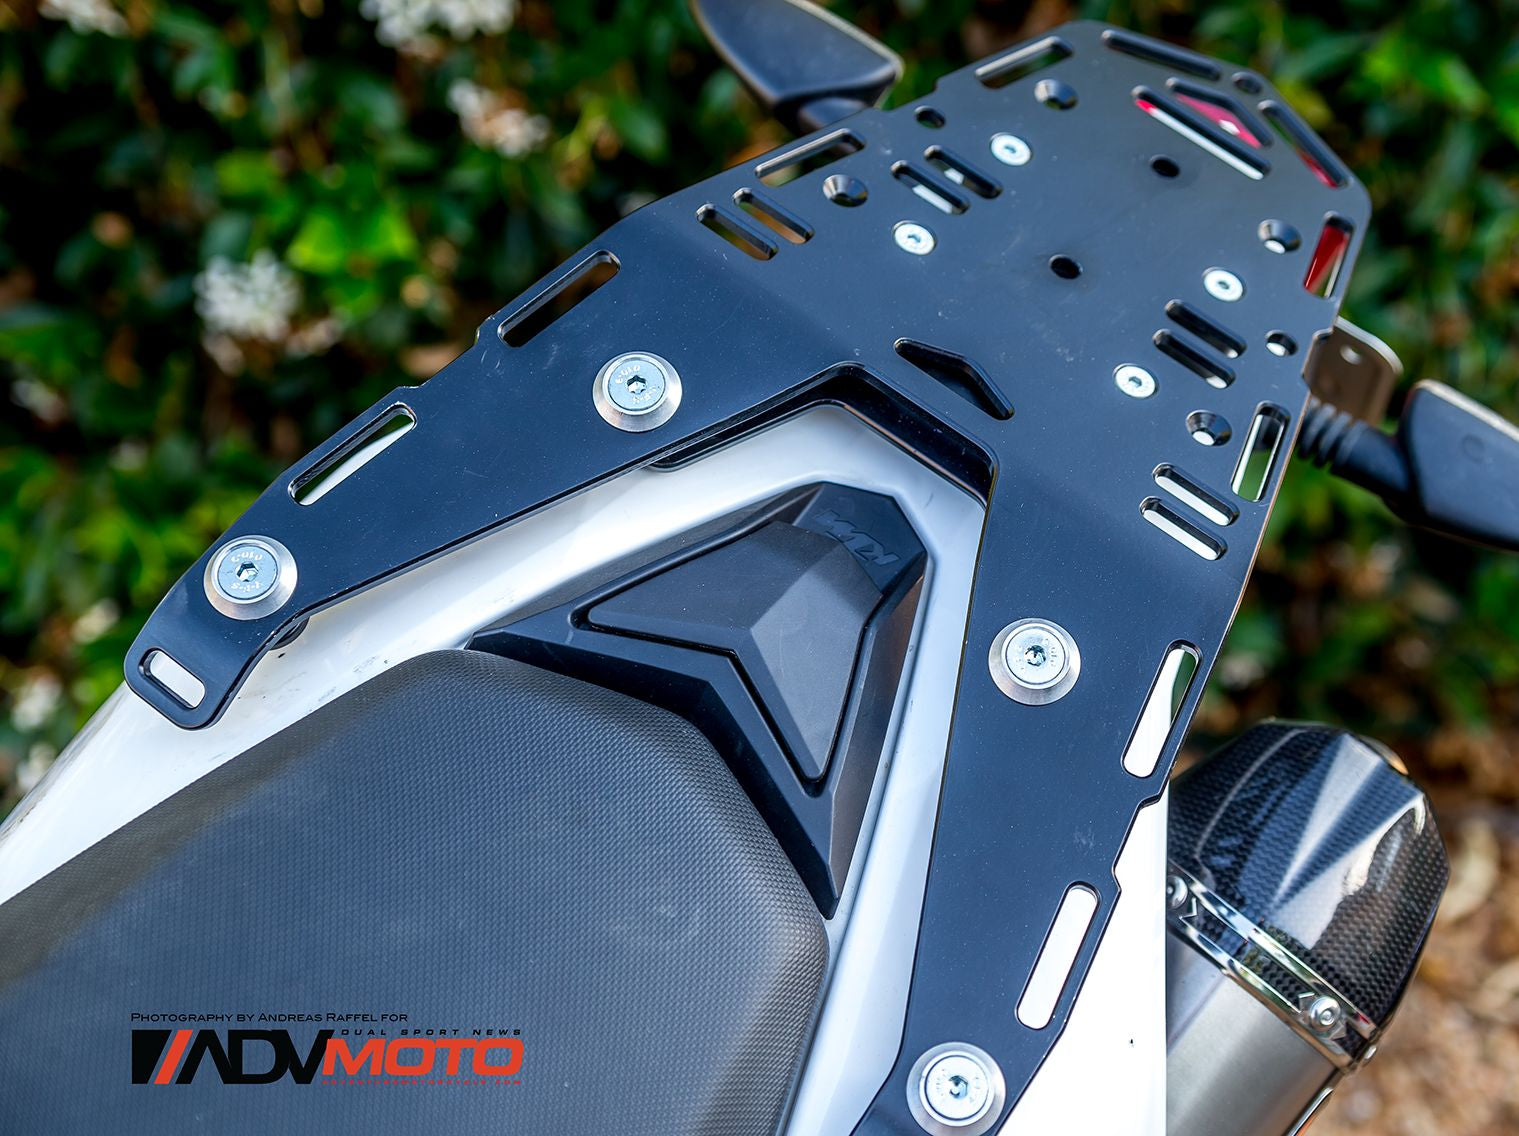 Perun moto KTM 690 Enduro Luggage rack in AdvMoto Magazine!